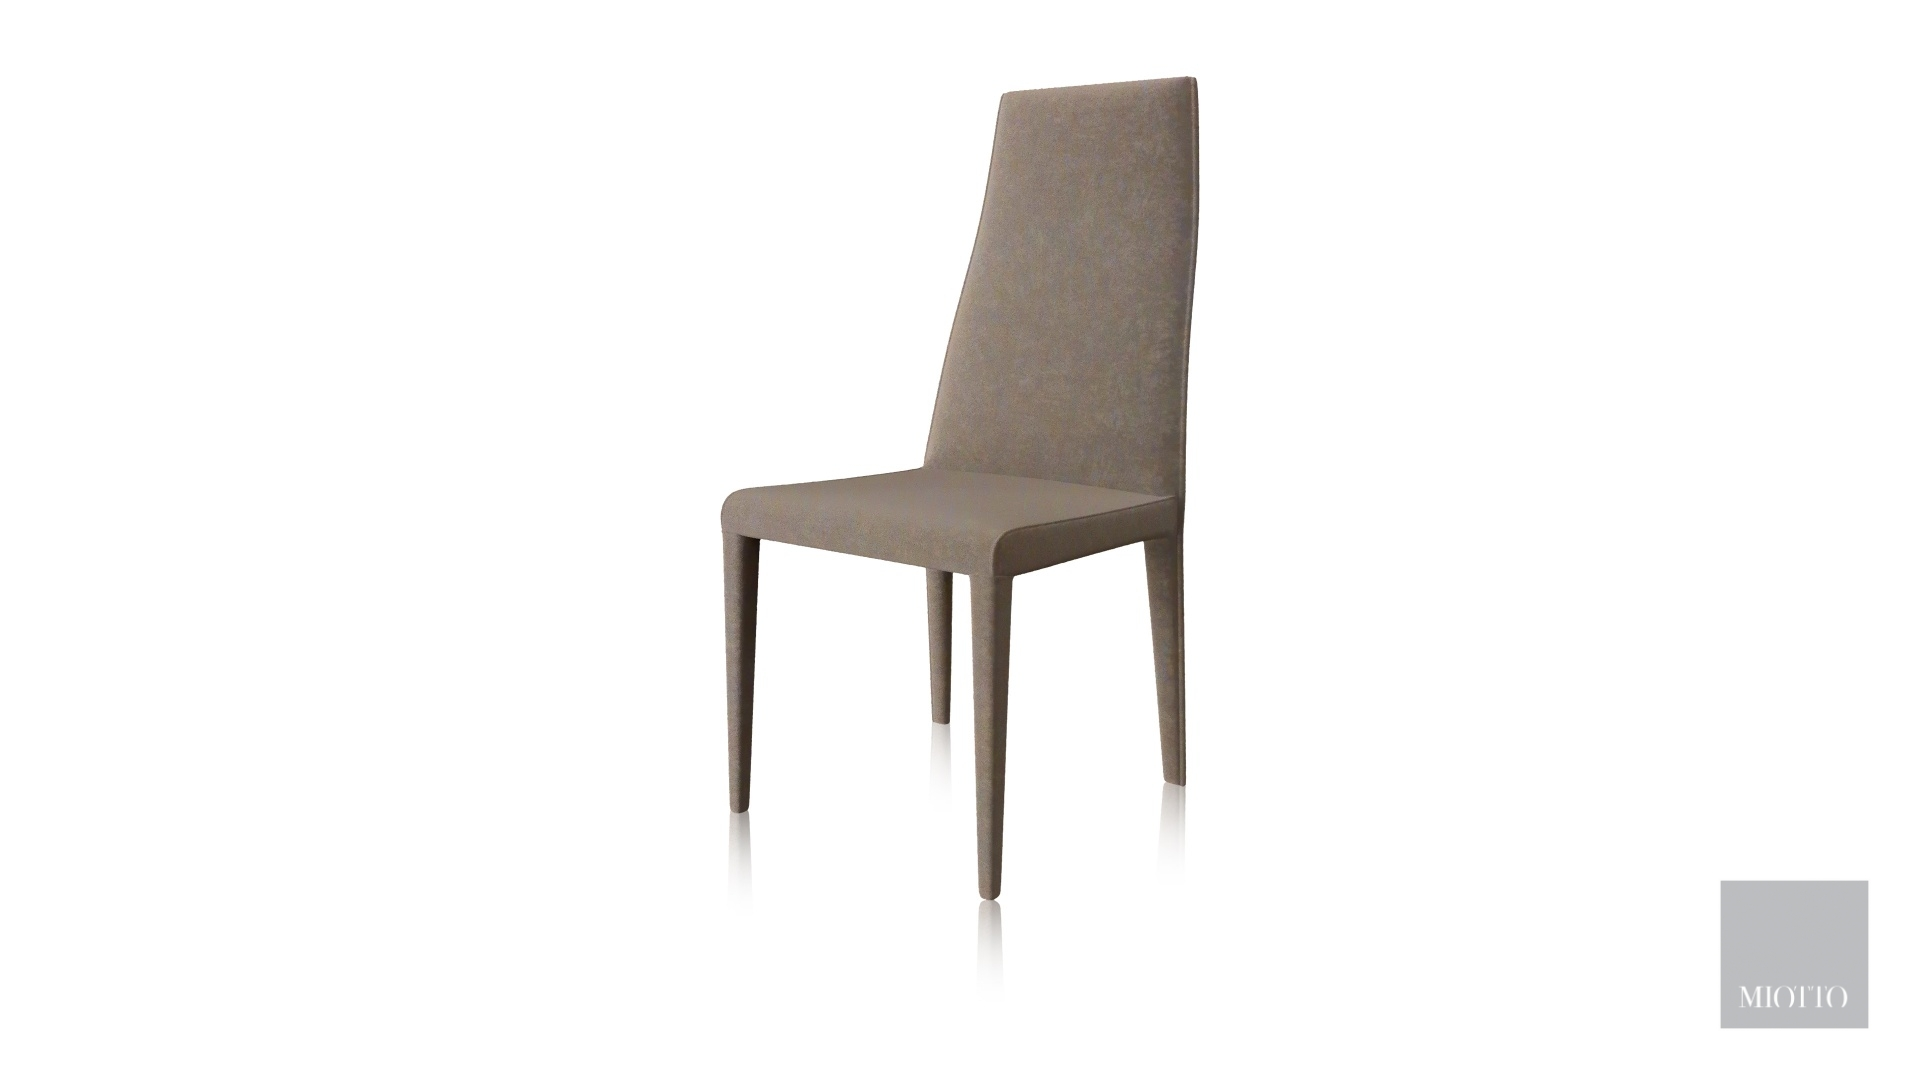 miotto_Rigano dining chair taupe miotto furniture